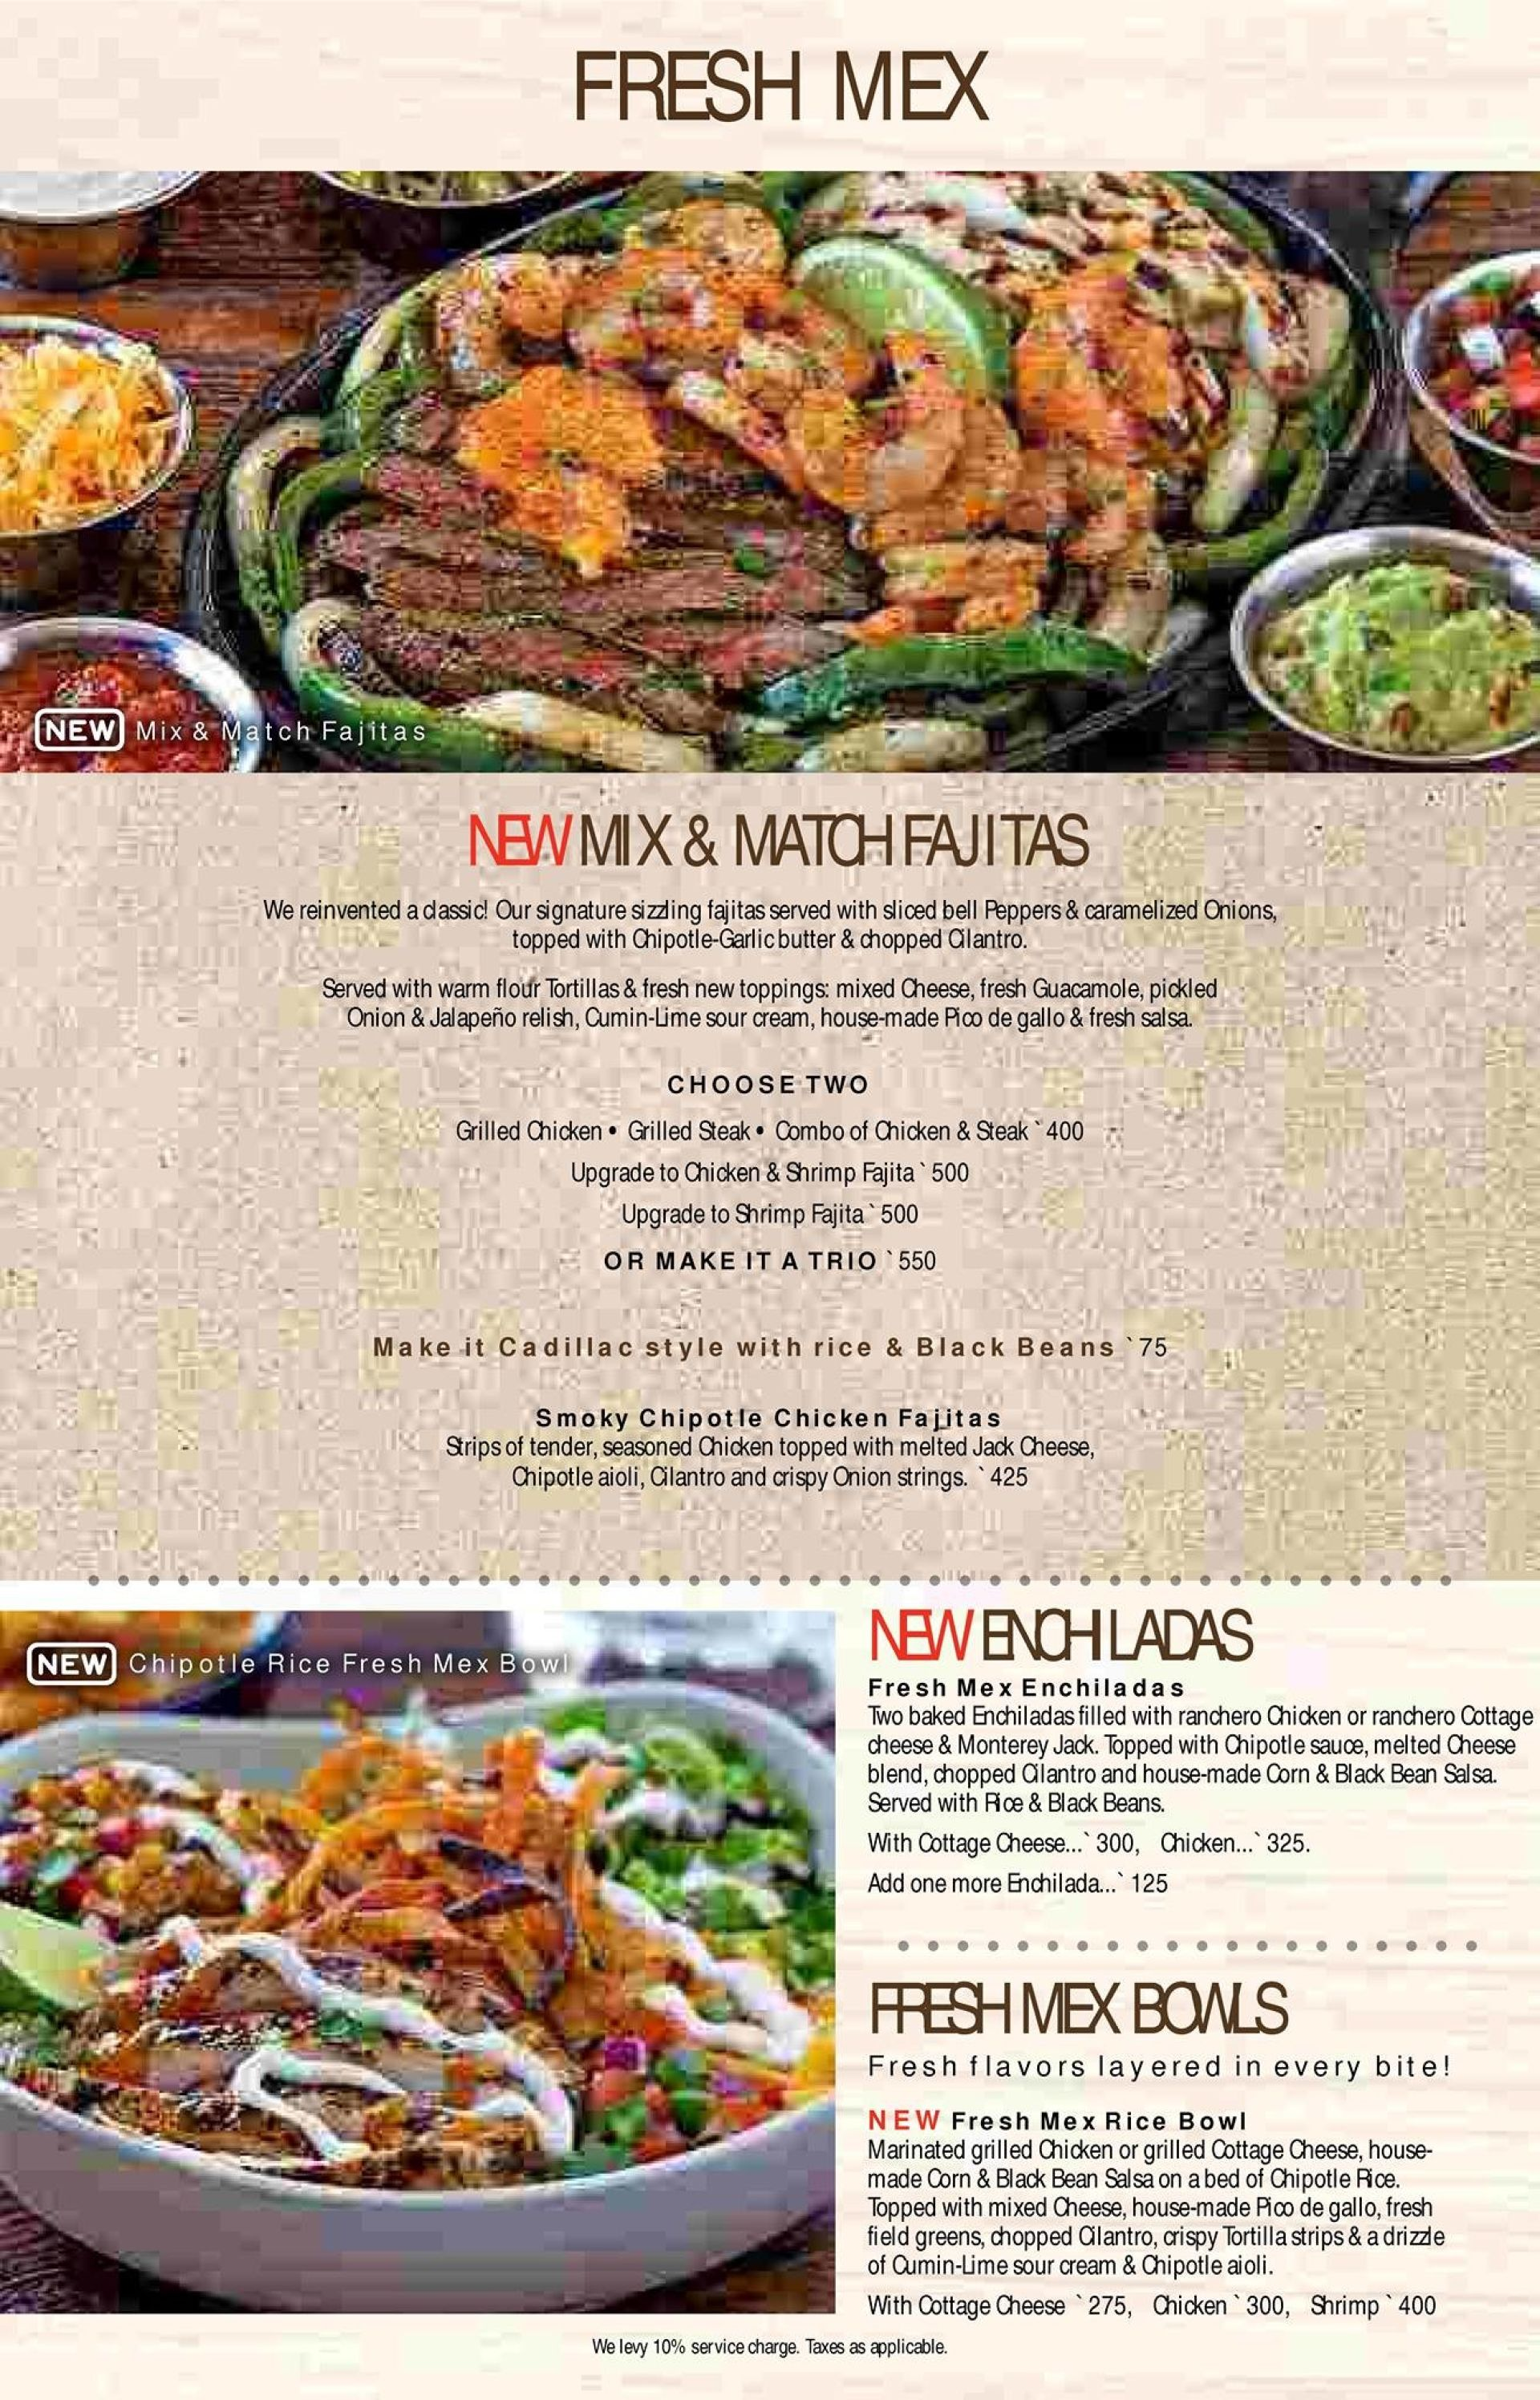 Menu of the Chili's Grill & Bar